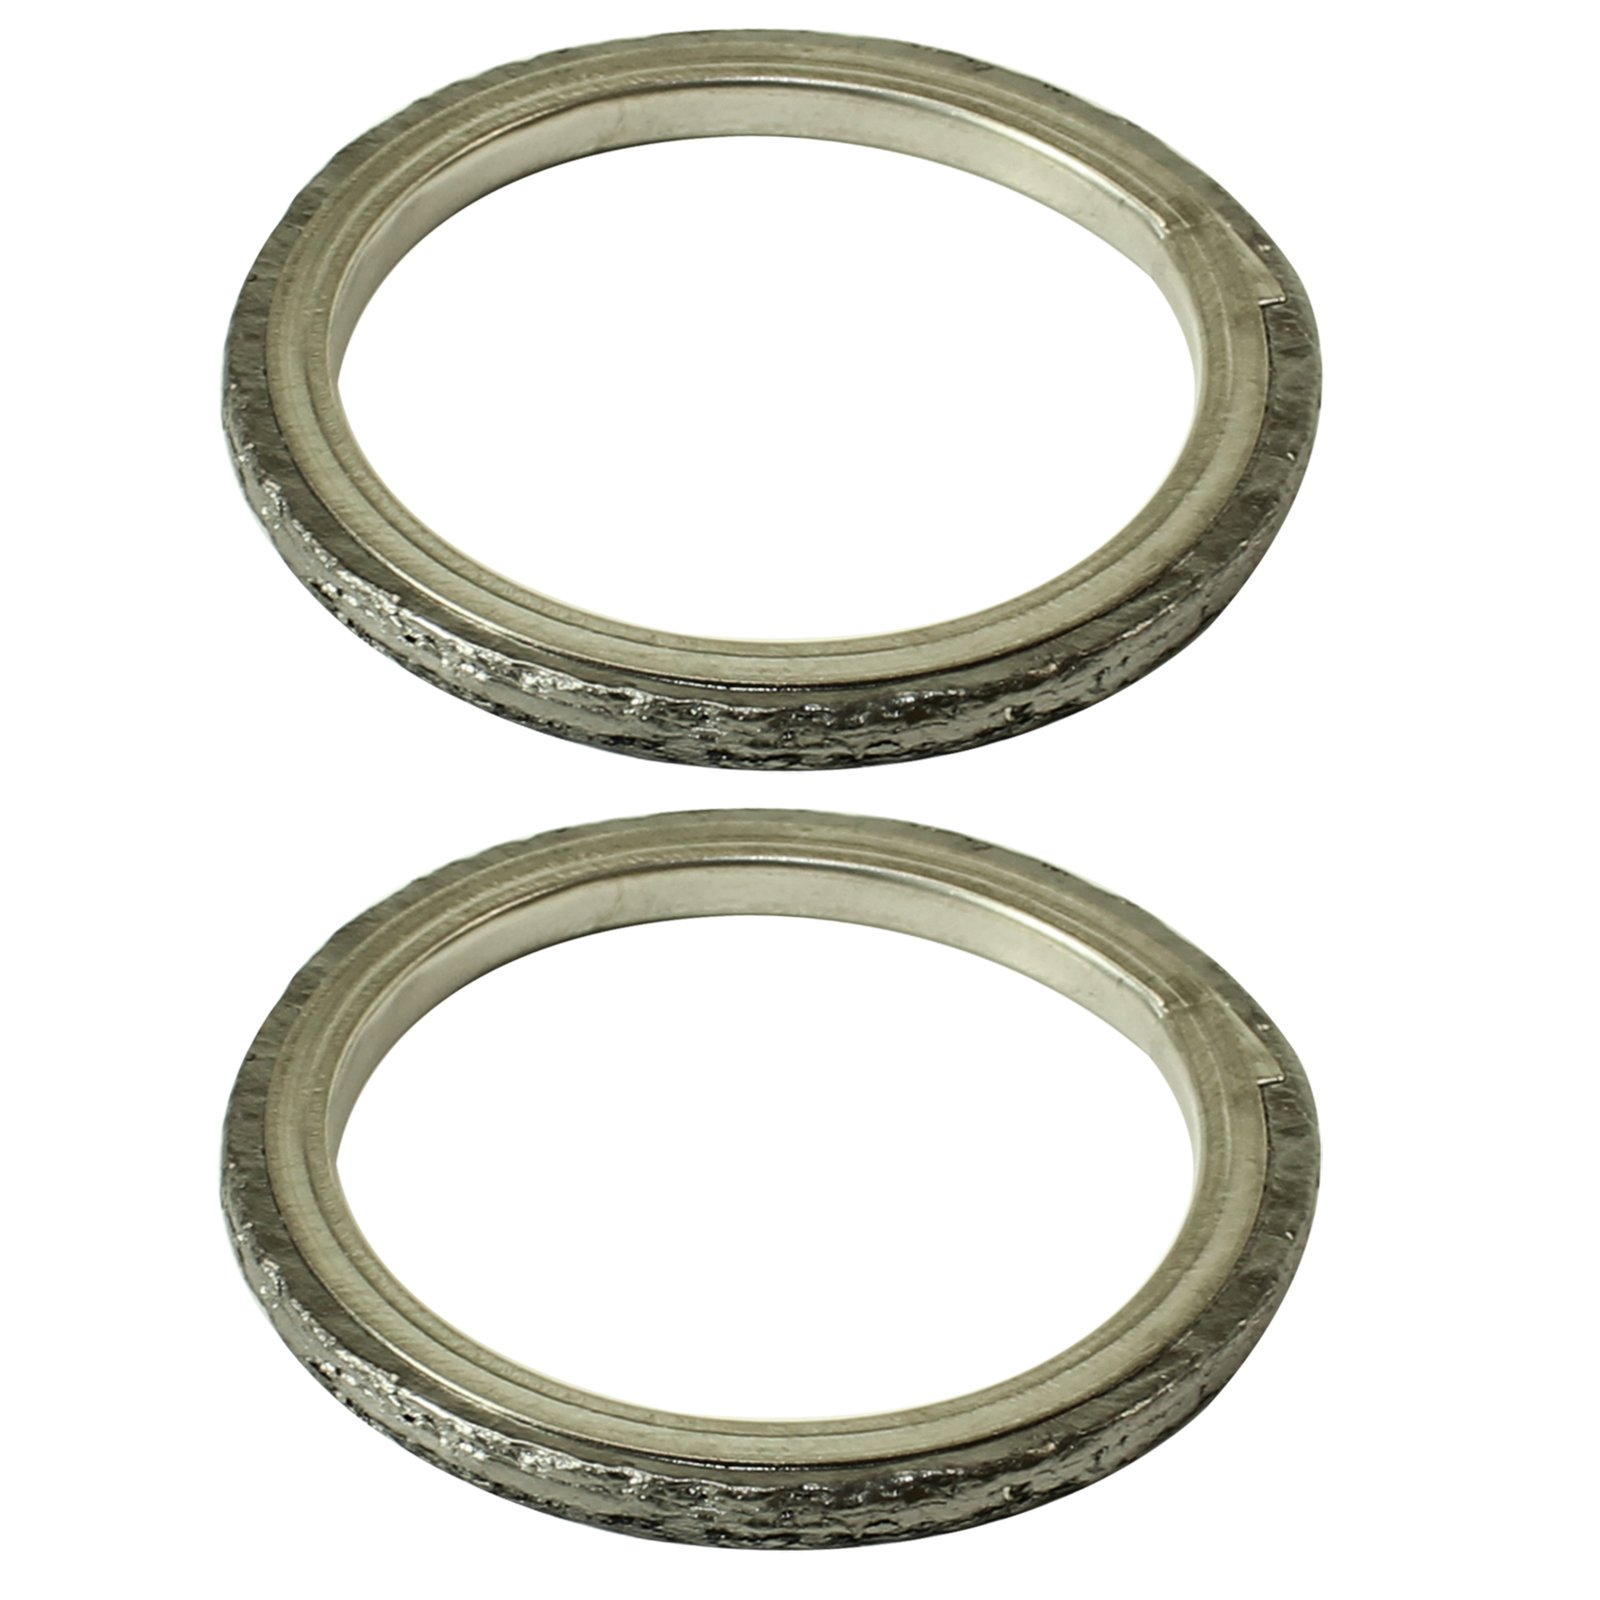 CALTRIC EXHAUST PIPE MANIFOLD GASKET Fits CAN-AM COMMANDER 1000 4X4 2011-2016